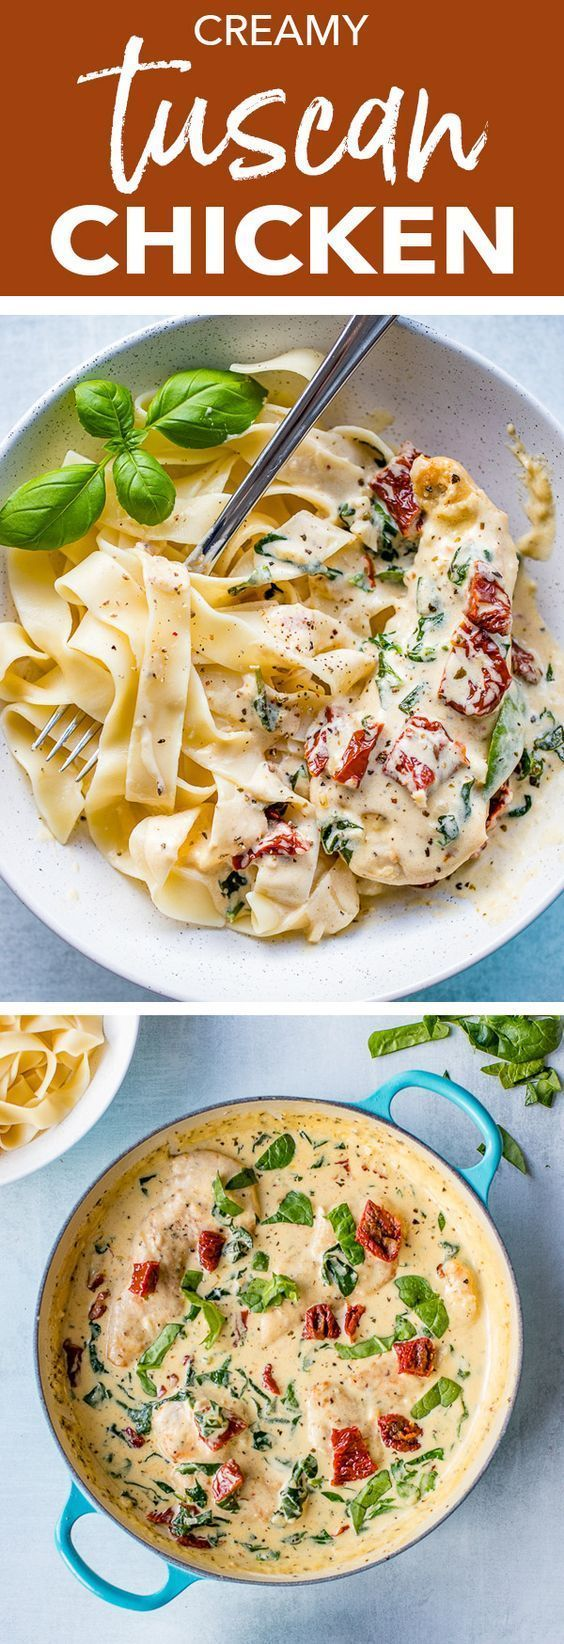 Tuscan Chicken A restaurant-quality meal on the table in less than 30 minutes - creamy Tuscan chicken with fresh garlic, spinach, and sun-dried tomatoes is as easy as it is delicious, and as perfect for busy weeknights as it is for entertaining.A restaurant-quality meal on the table in less than 30 ...